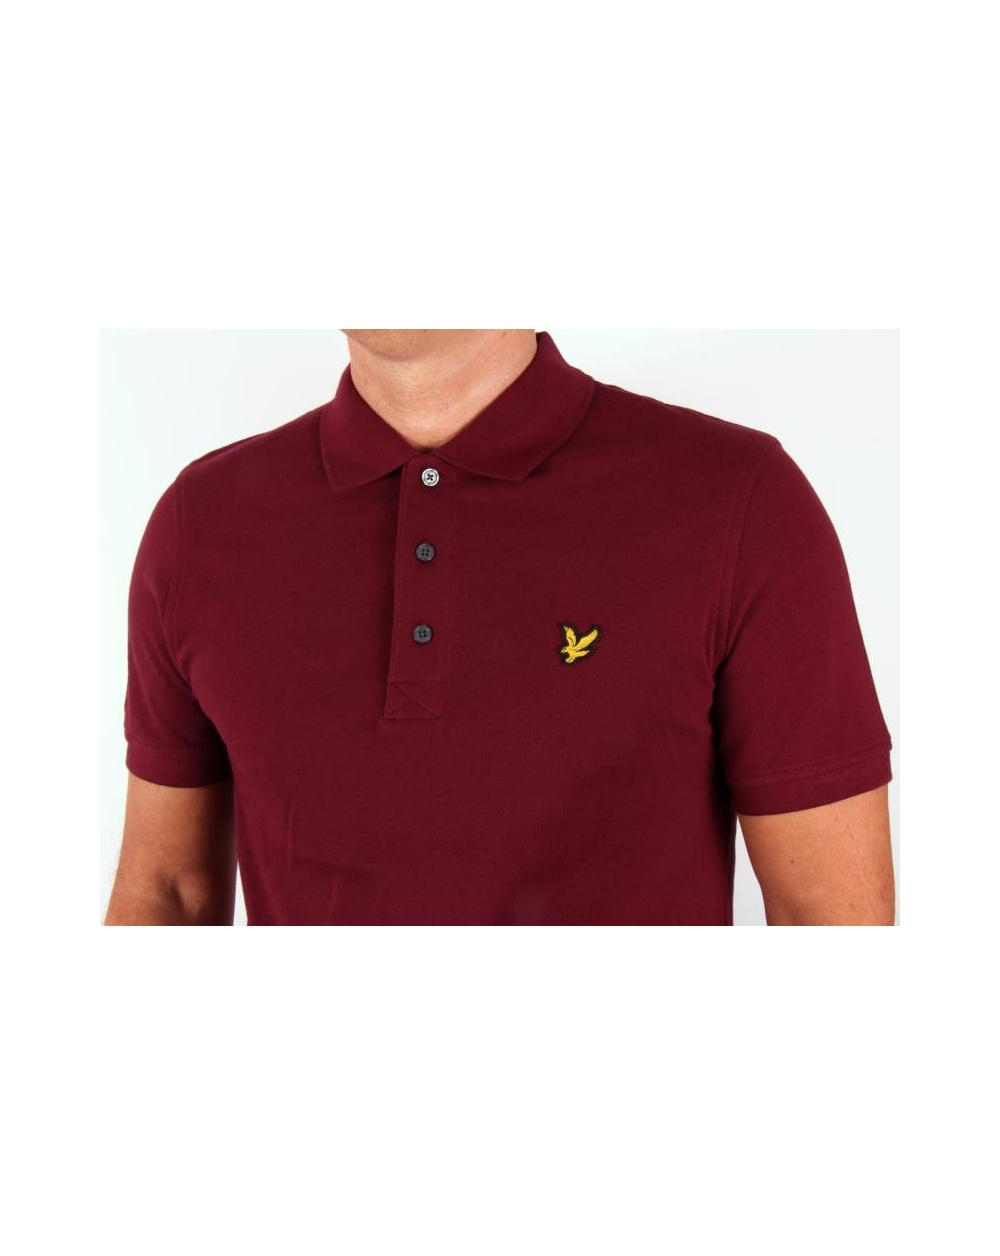 lyle and scott polo shirt s s bright claret lyle scott polo shirt. Black Bedroom Furniture Sets. Home Design Ideas